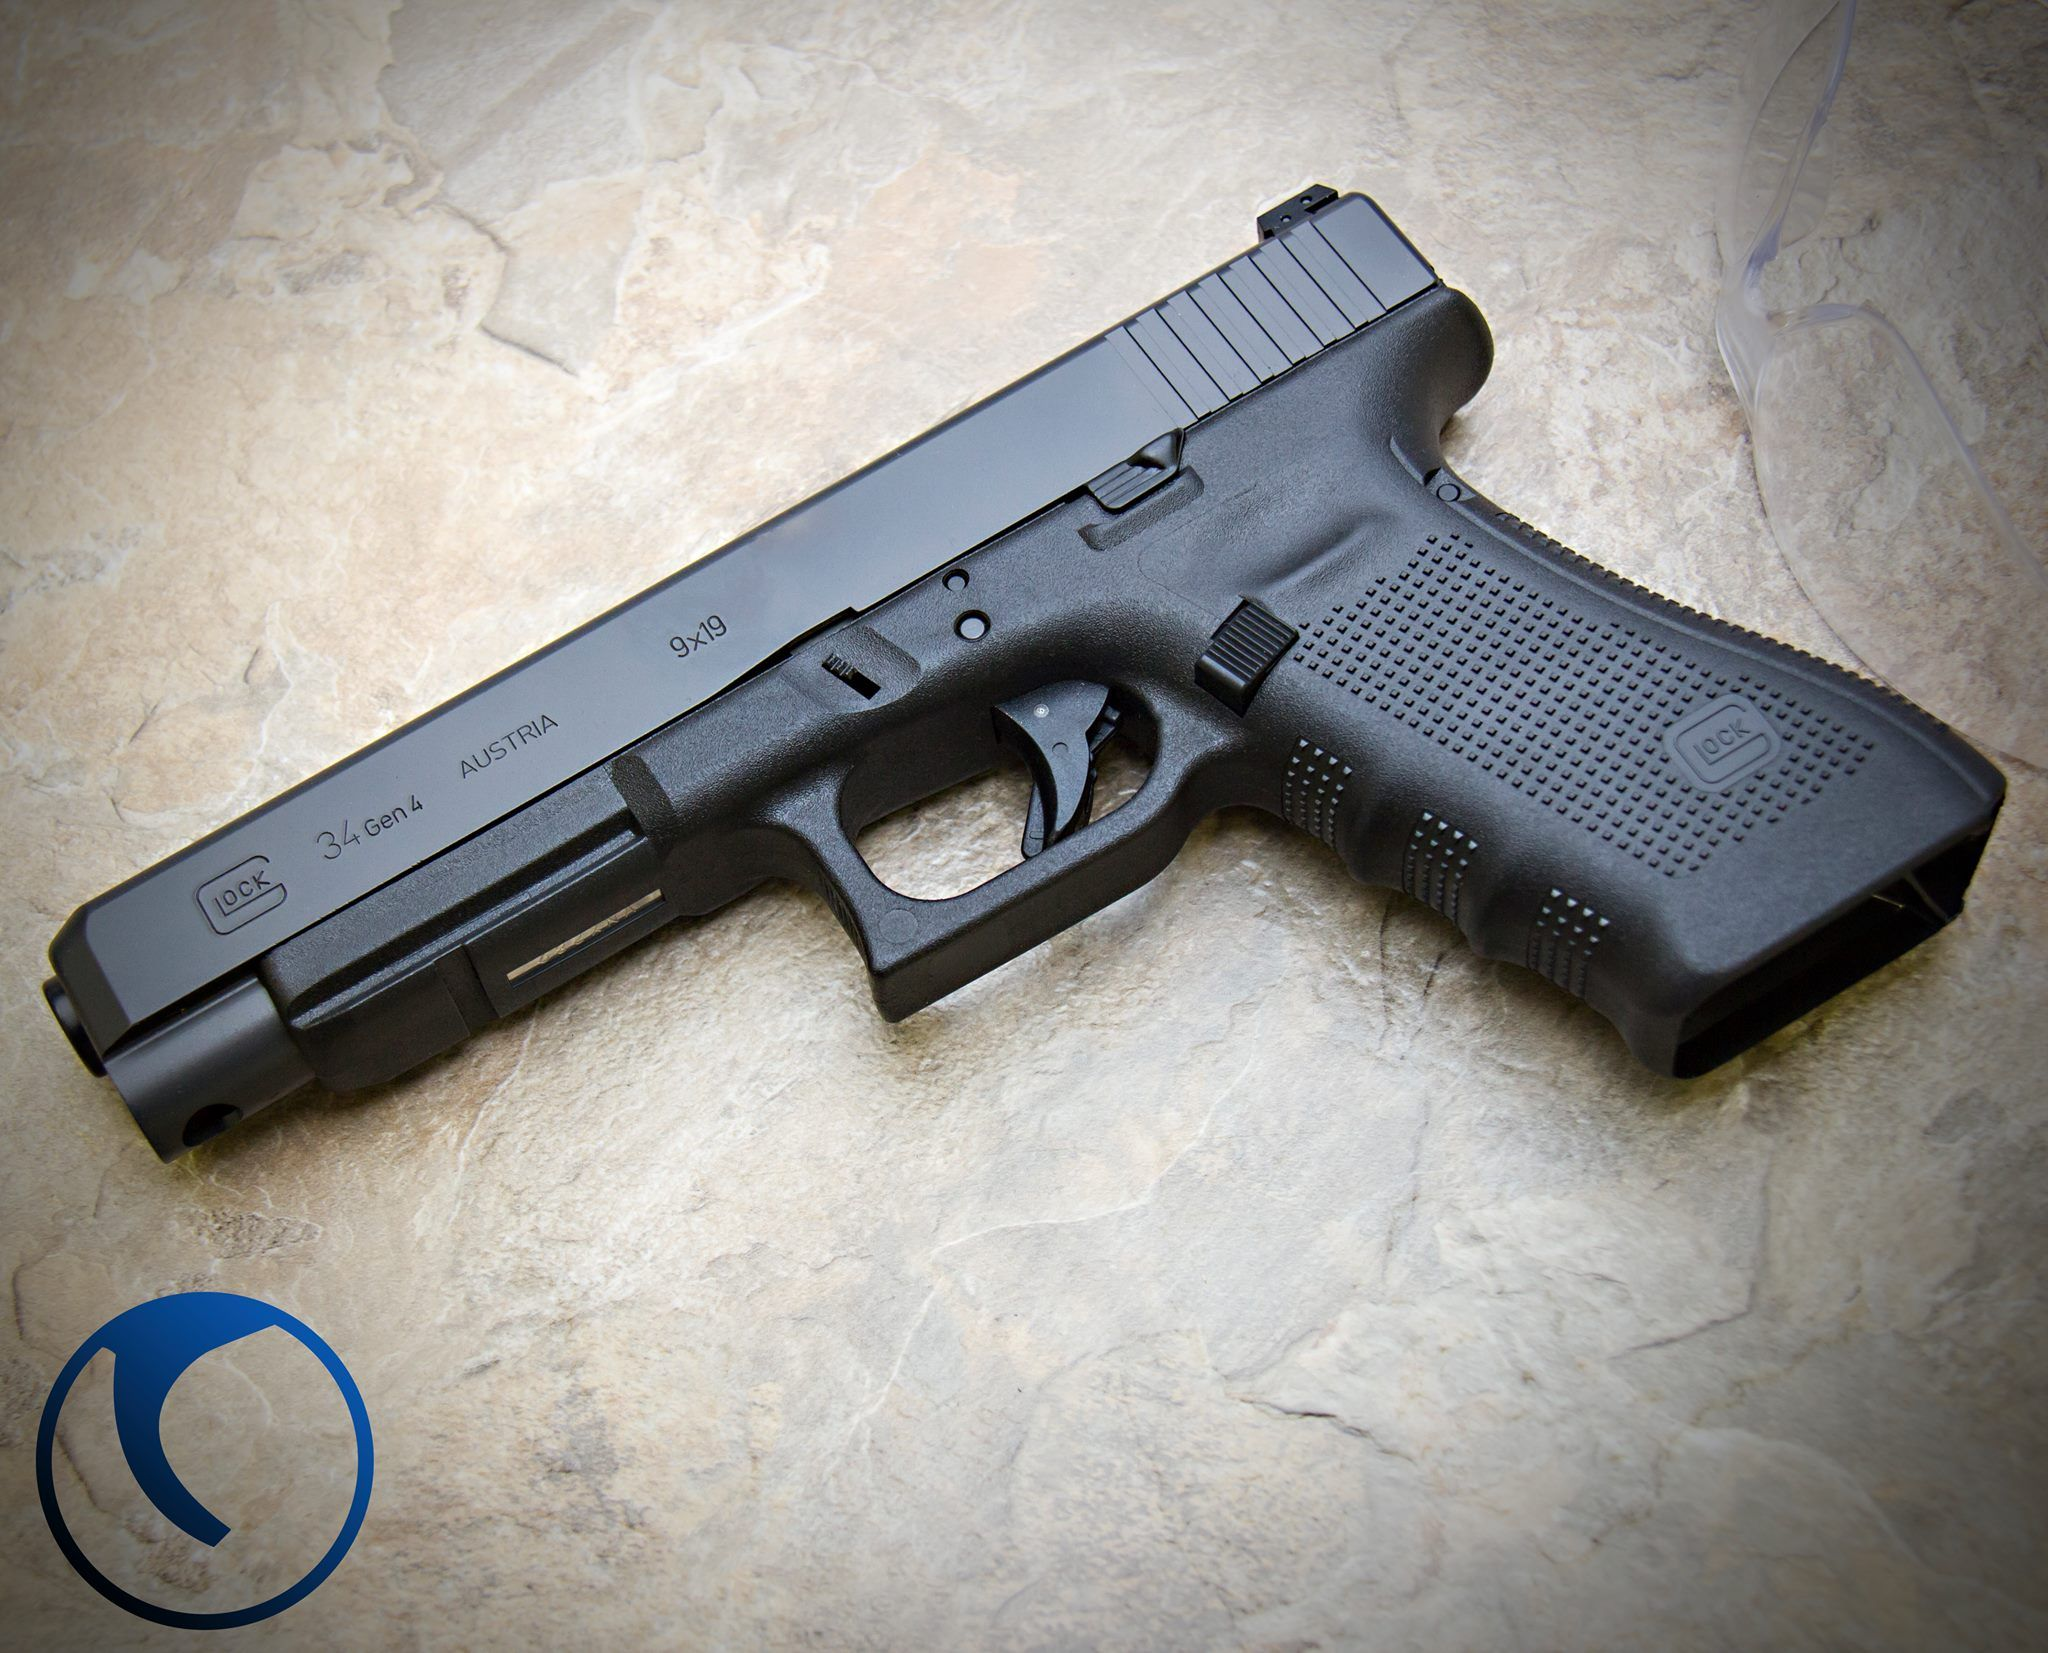 The Glock 34 Gen 4 | Glock at Blue Ridge Arsenal | Guns, Hand guns